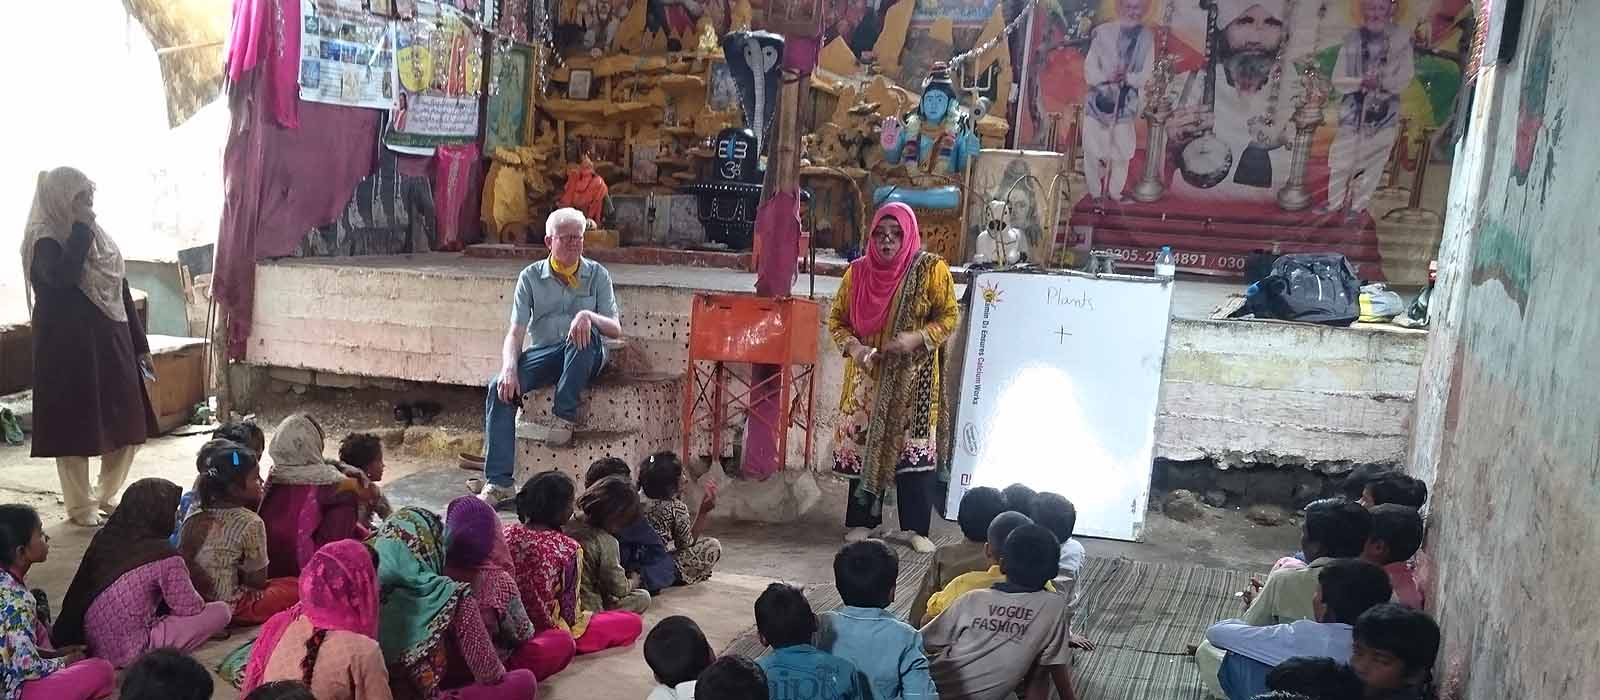 A school in a temple has set a shining example of pluralism